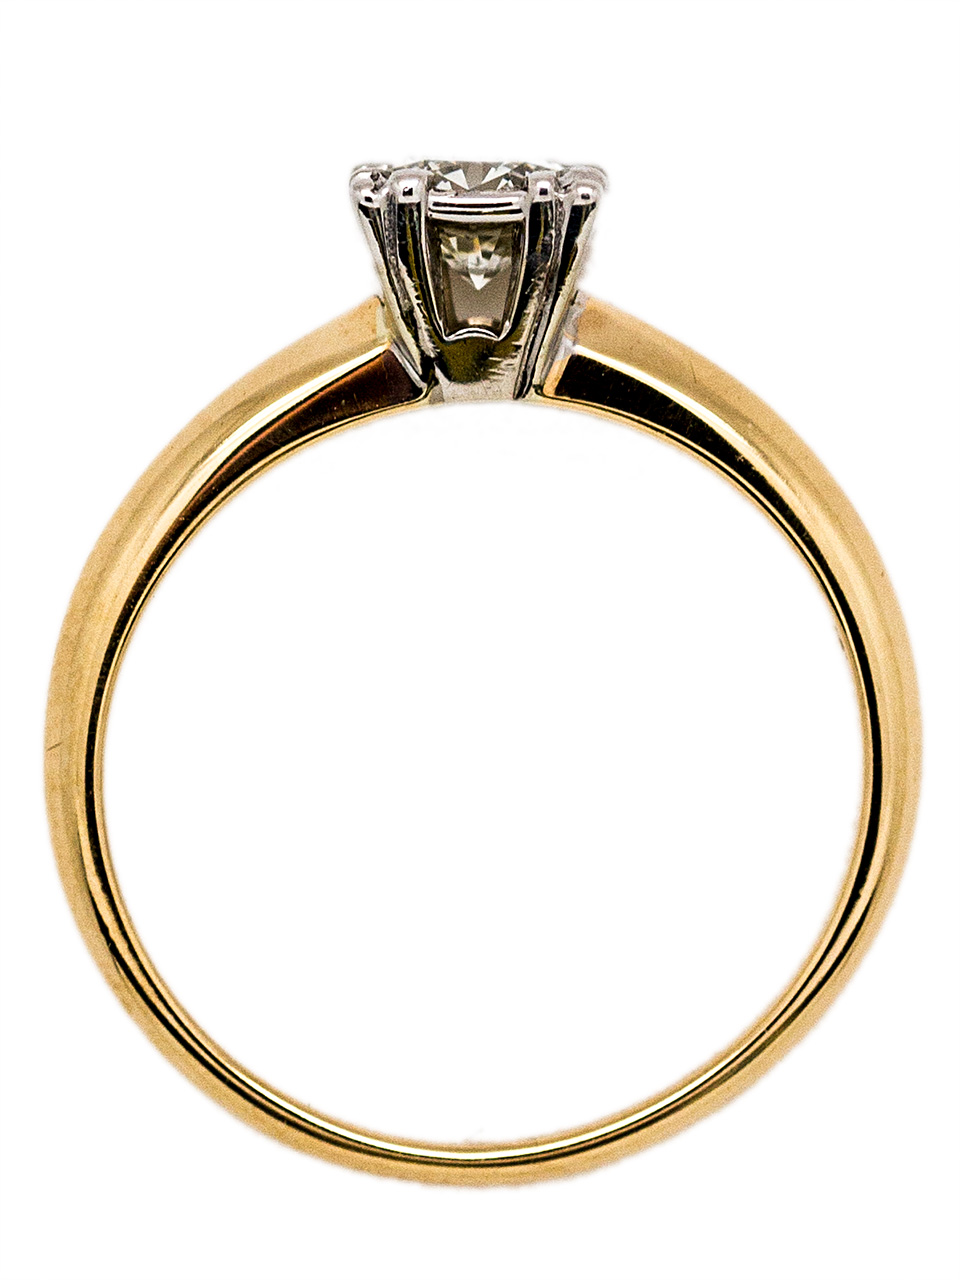 Vintage Solitaire Engagement Ring 0.40ct Transitional Cut I-VS2 circa 1940s